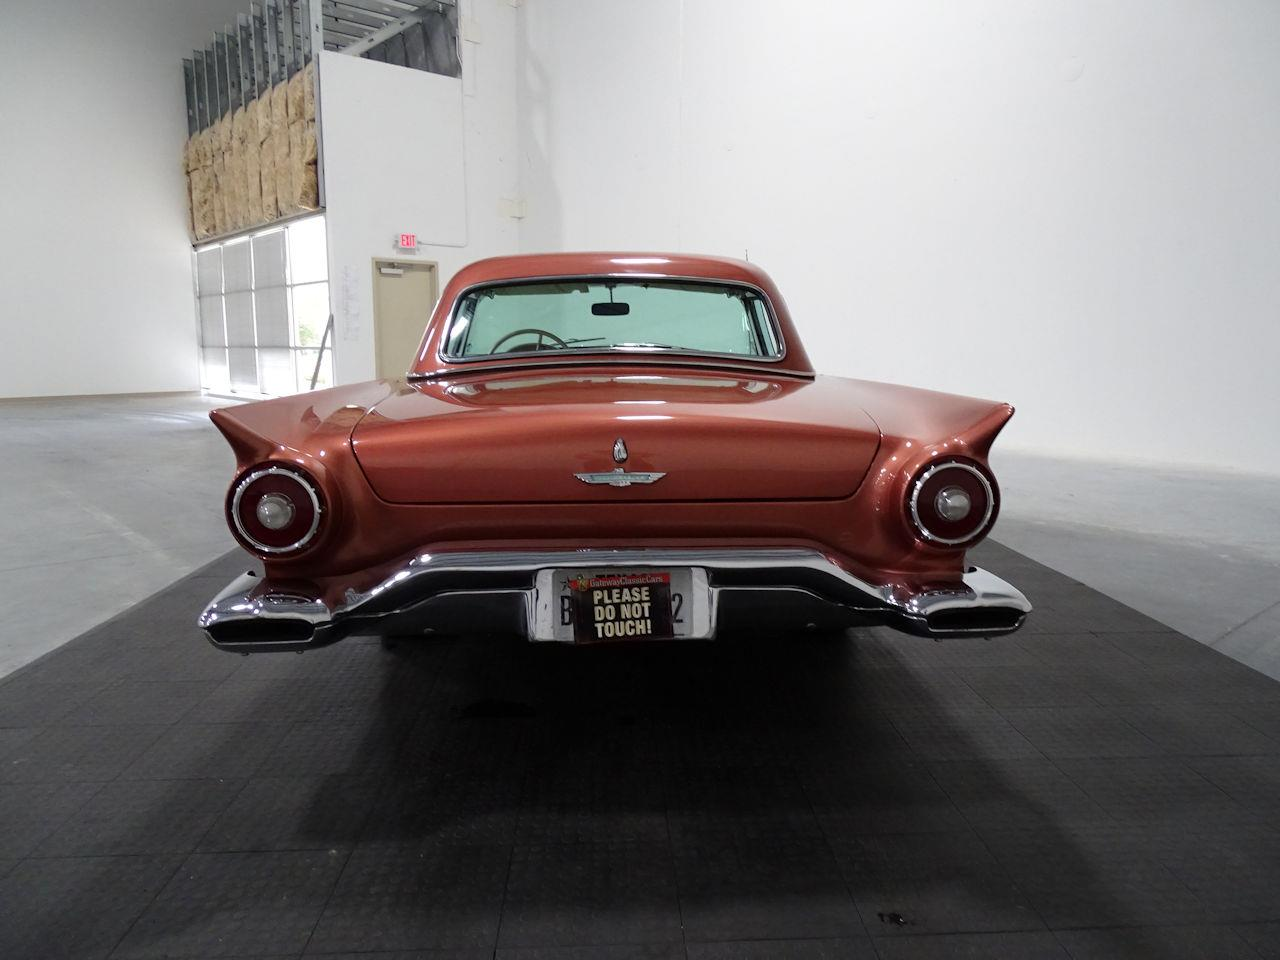 Large Picture of '57 Ford Thunderbird located in Houston Texas - $55,000.00 Offered by Gateway Classic Cars - Houston - LUKB